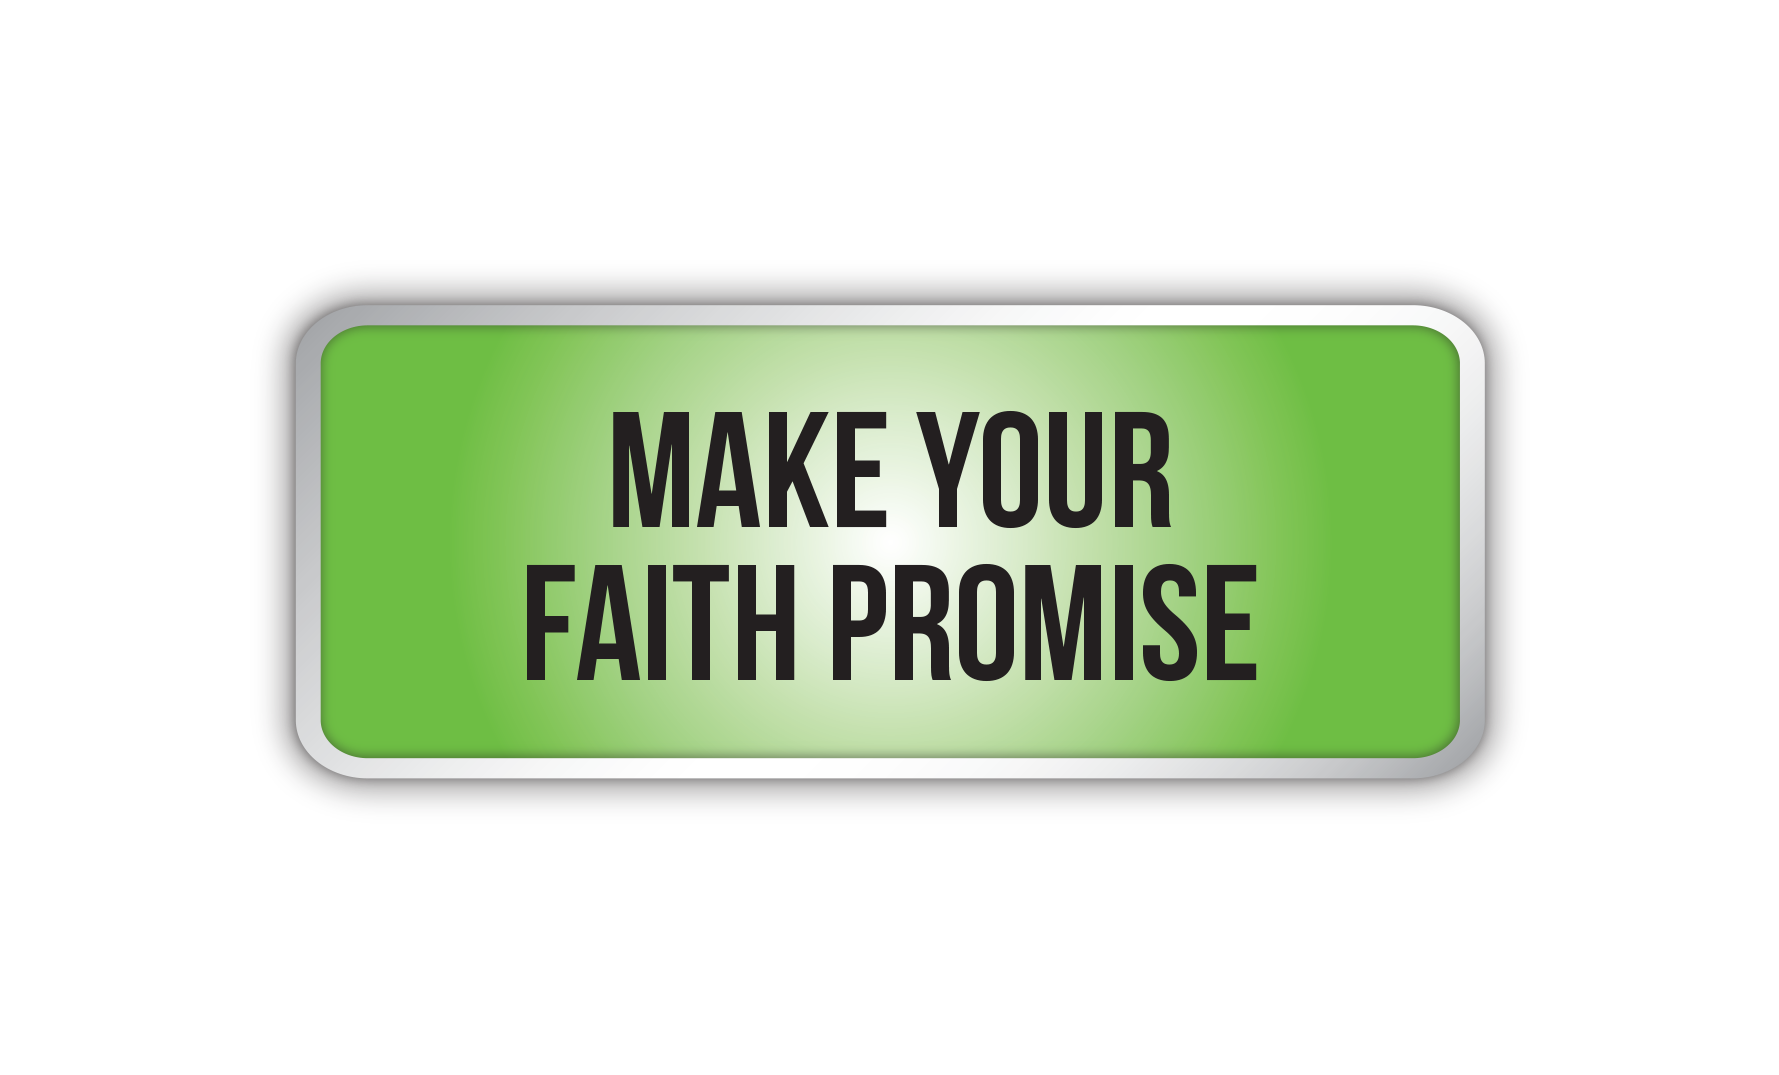 Make Your FaithPromise